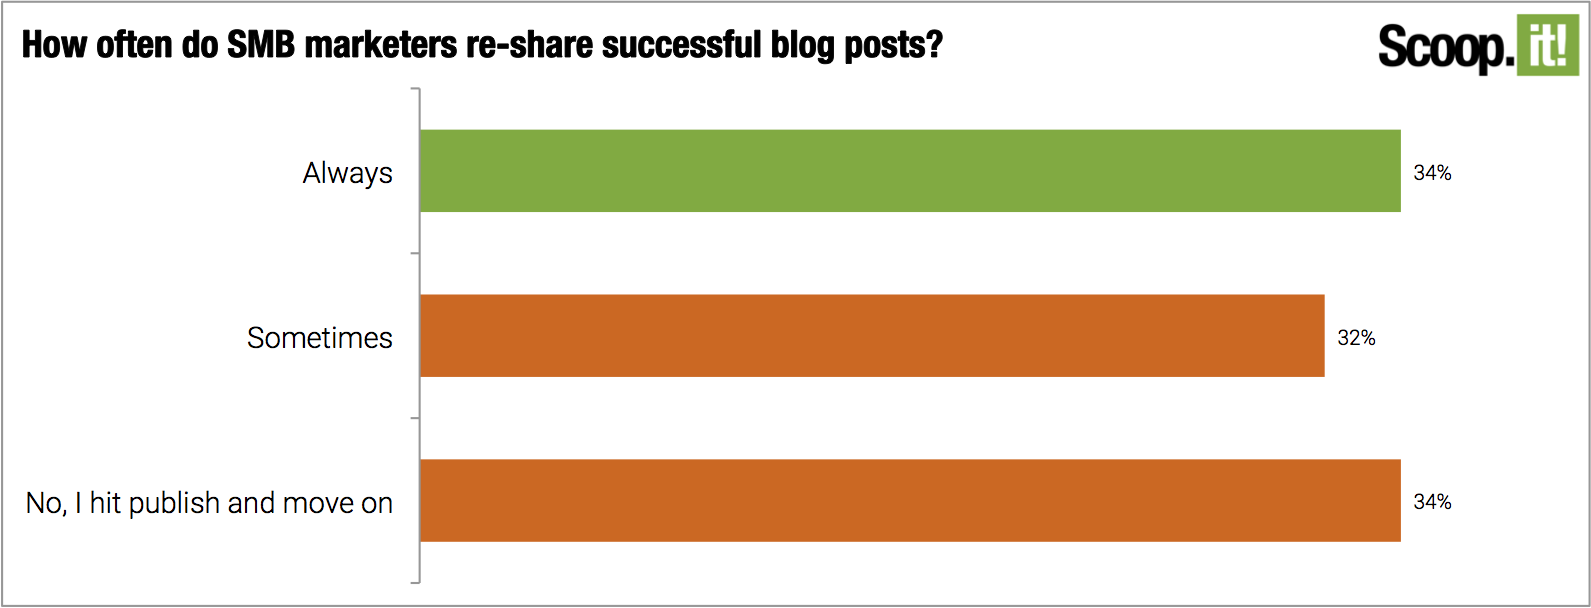 How often do SMB marketers re-share successful blog posts